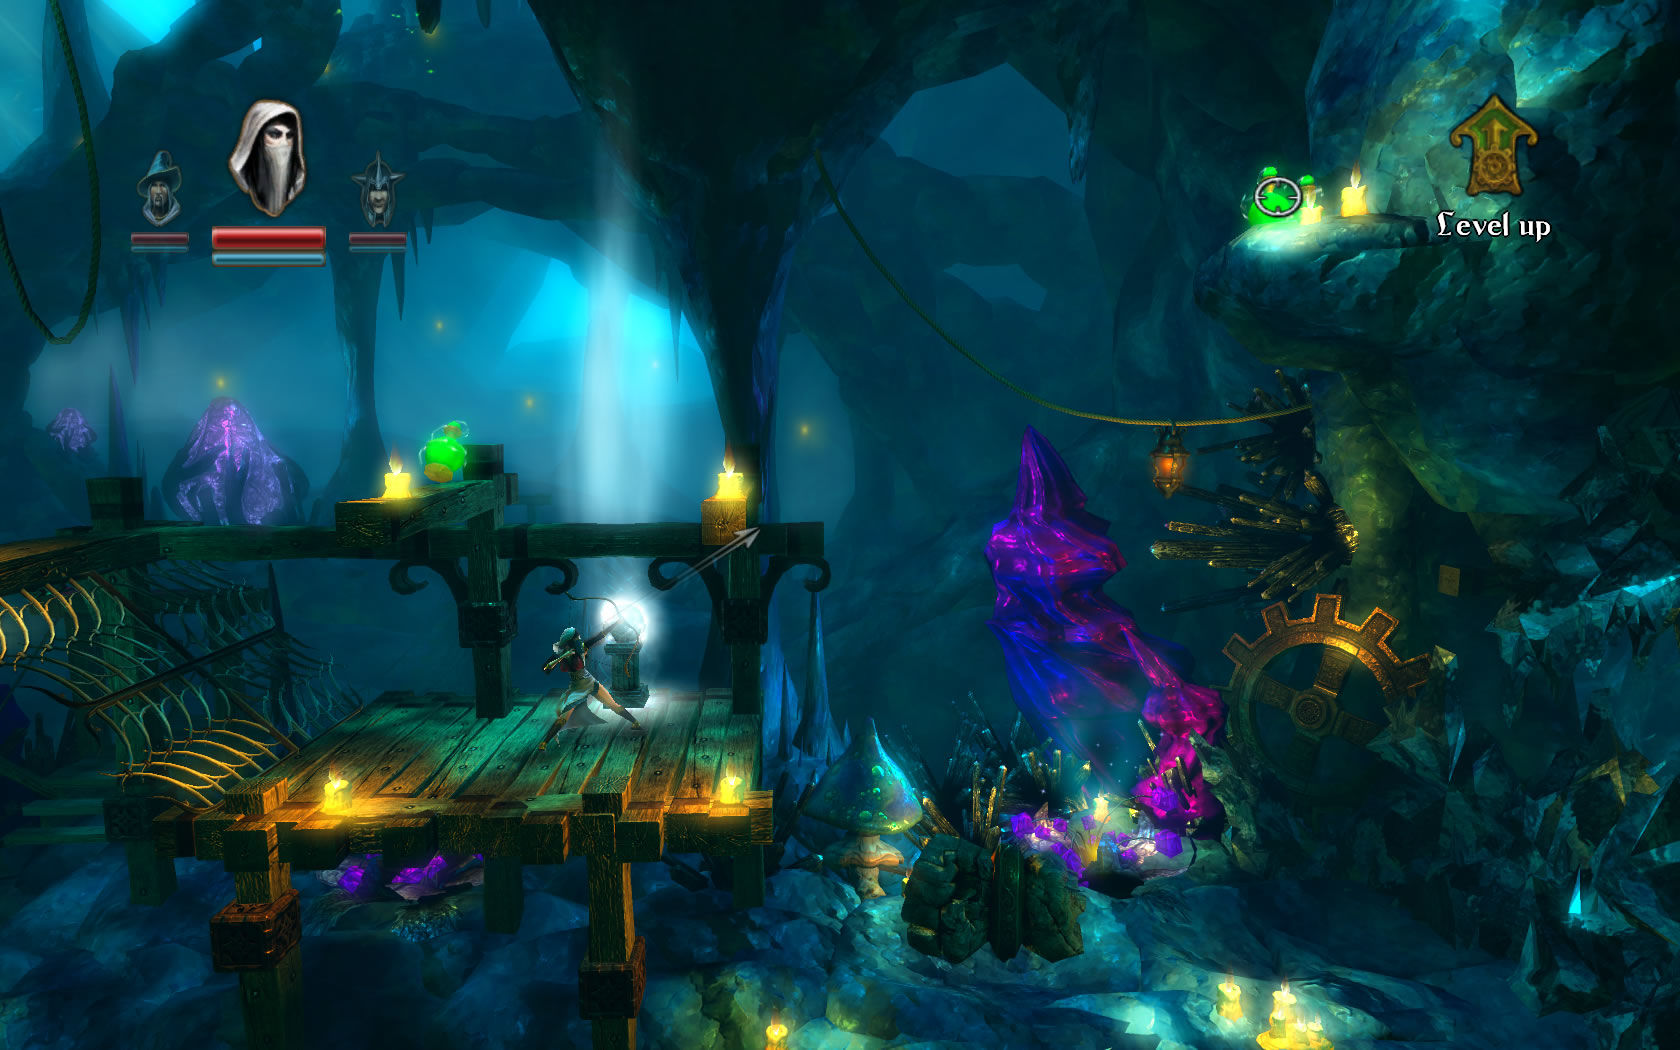 Trine Windows Zoya aims for the potions on the higher ledge.